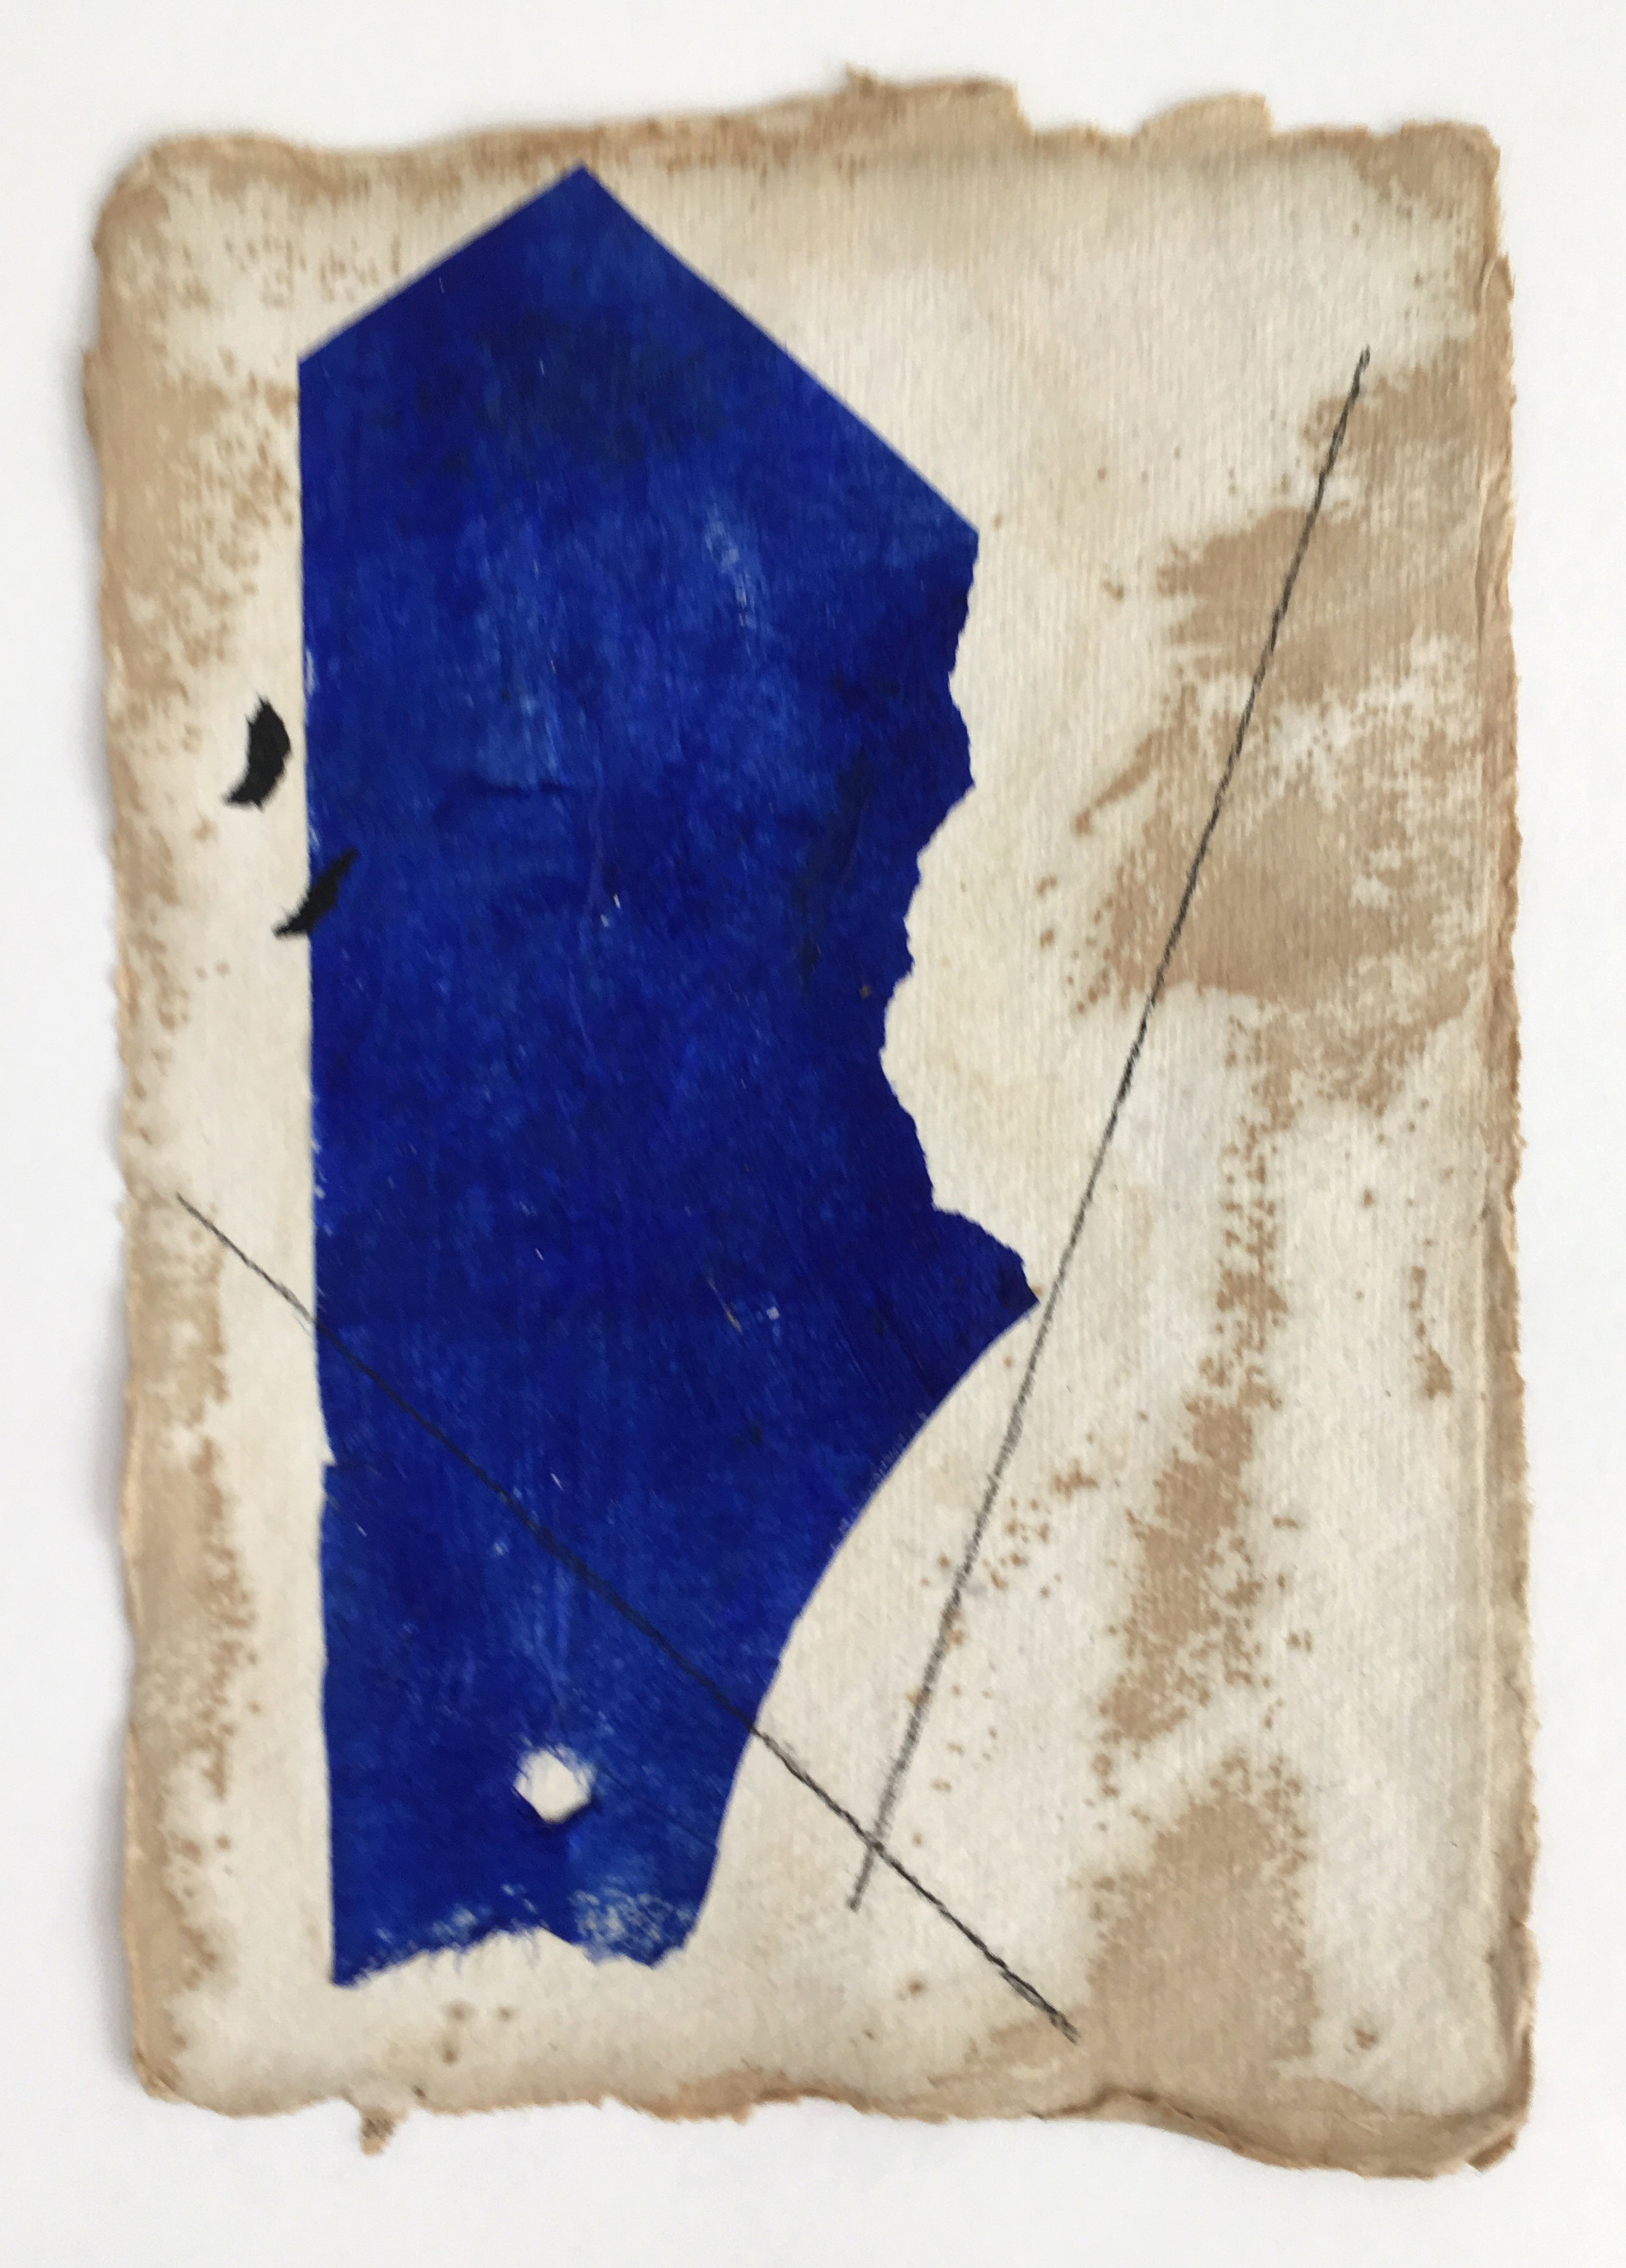 Ultramarine on Tan with Black Lines and Flecks, 2018, mixed media on coffee-dyed water color paper, 8.25 x 6.25 in, SOLD